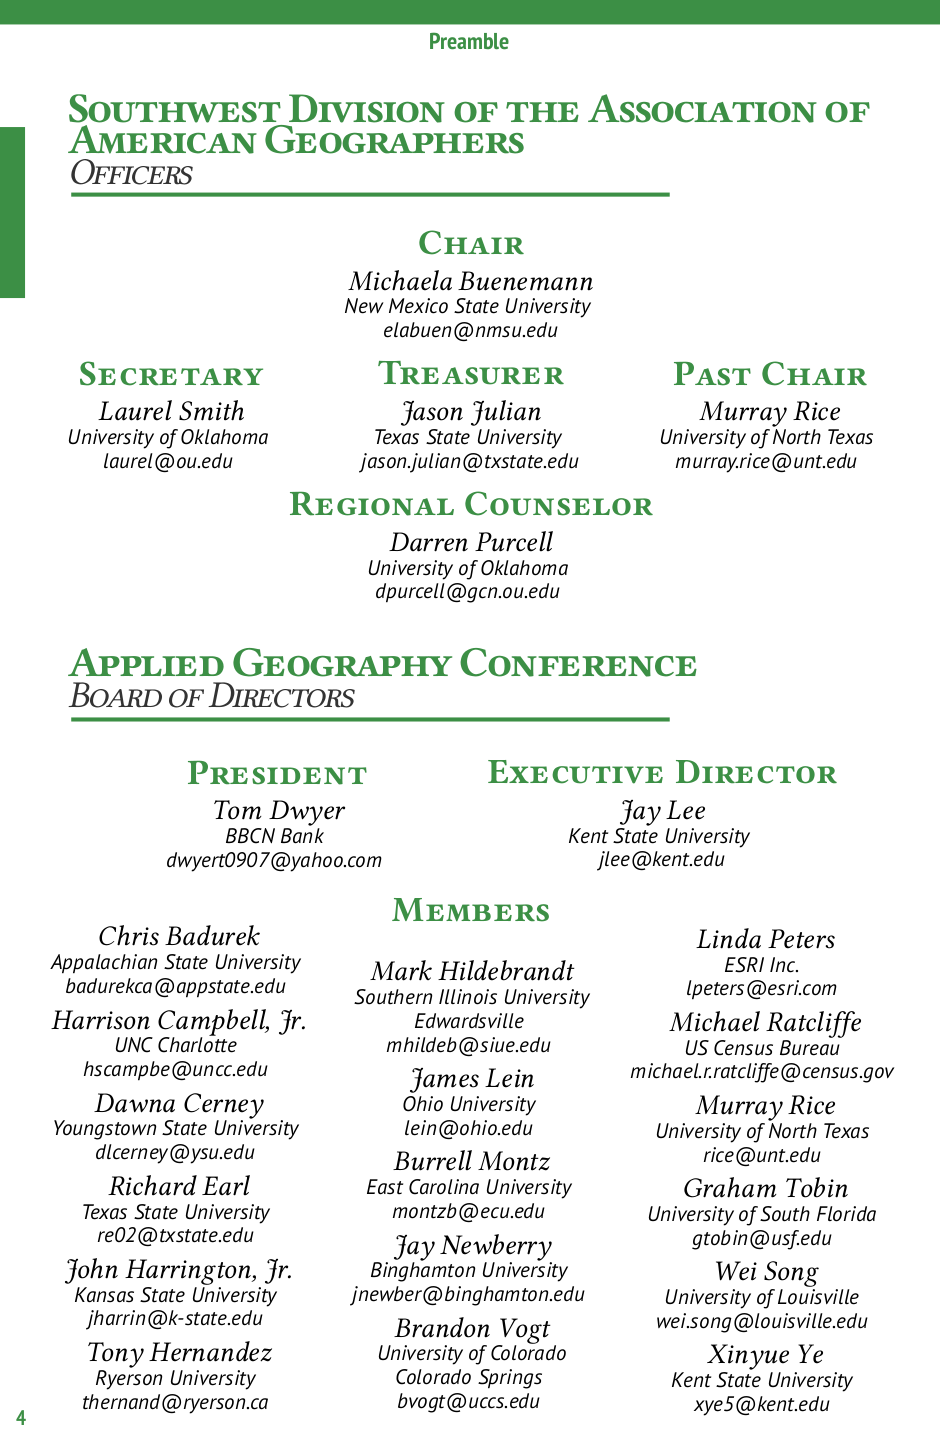 SWAAG/AGC 2015 conference program - Officer page